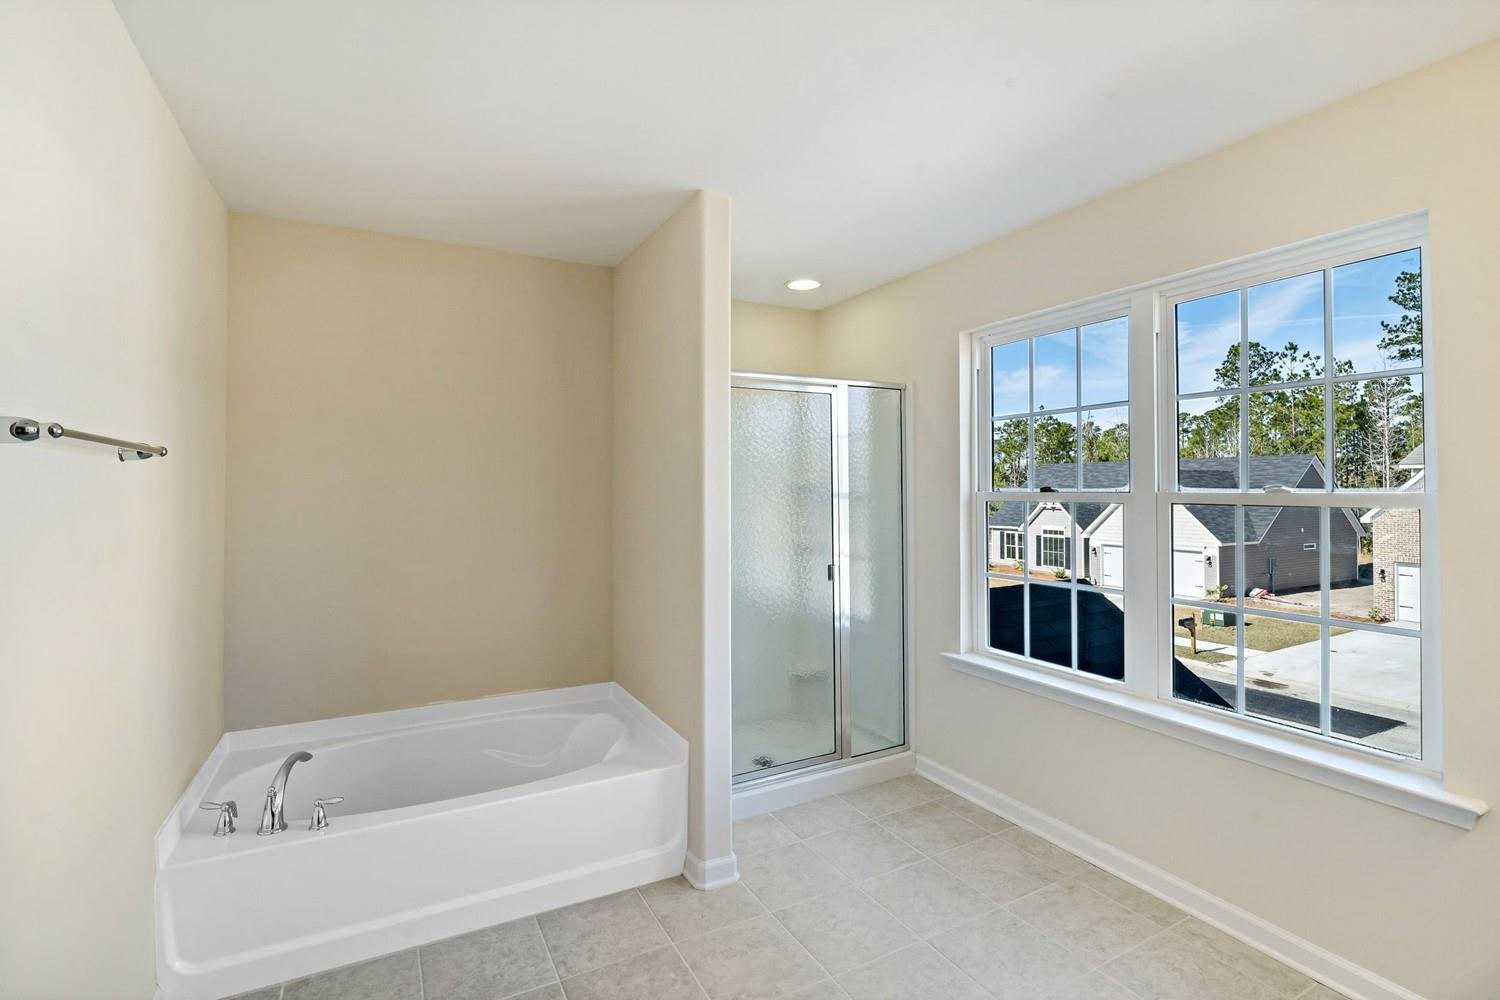 Bathroom featured in The Hatteras By Lamar Smith Homes in Savannah, GA